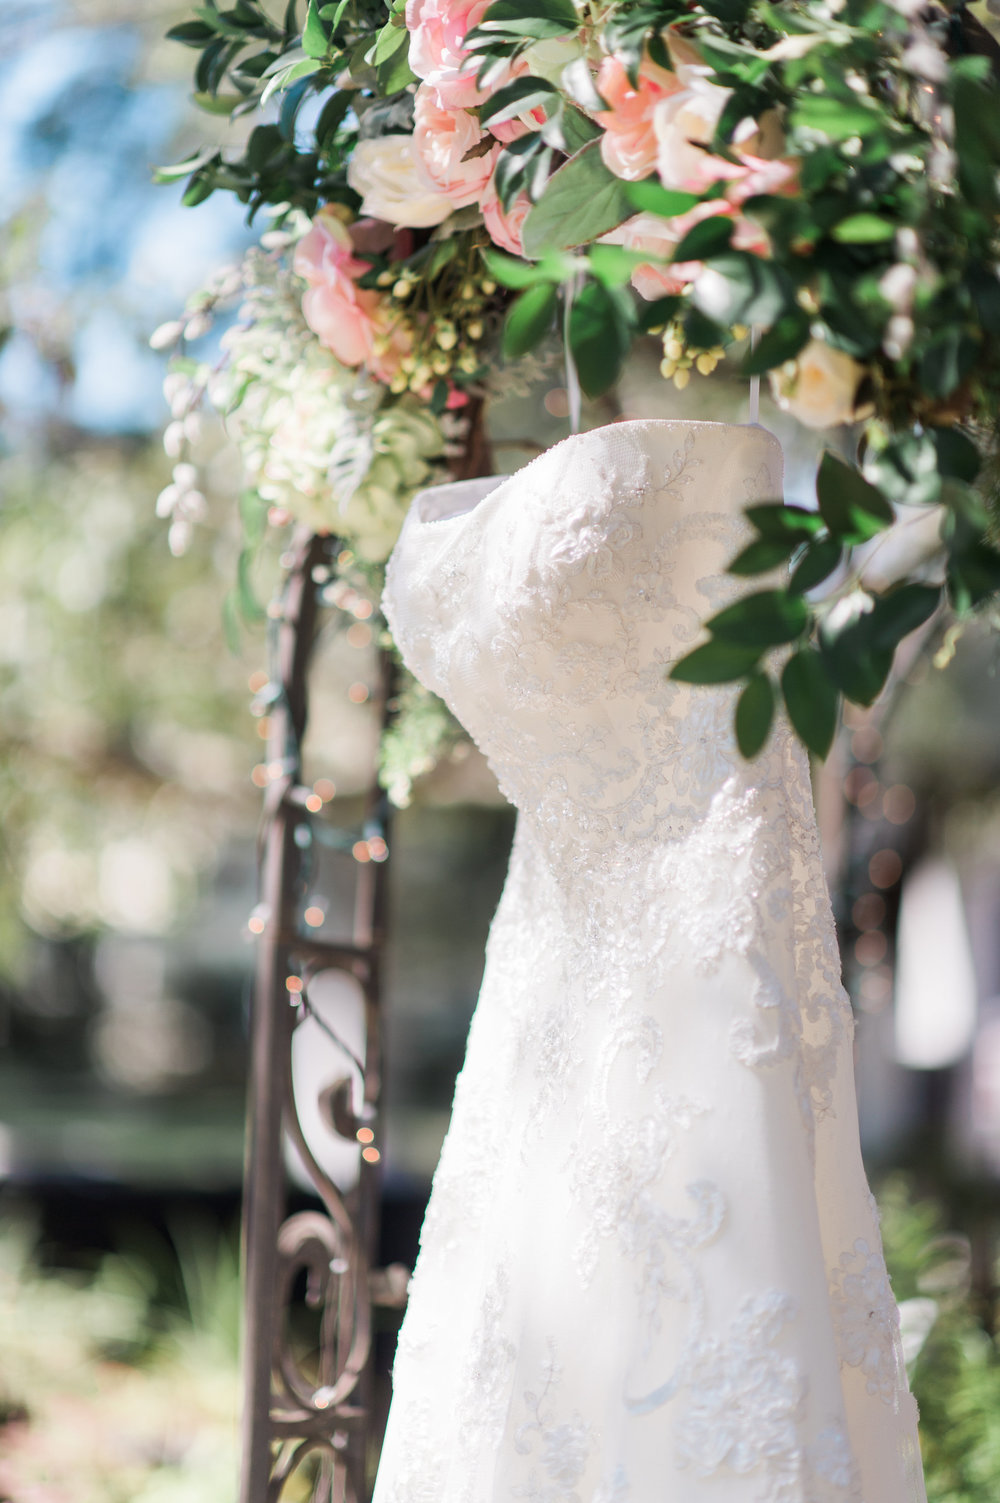 Danielle and Butch s Wedding-Details and Decor-0002.jpg